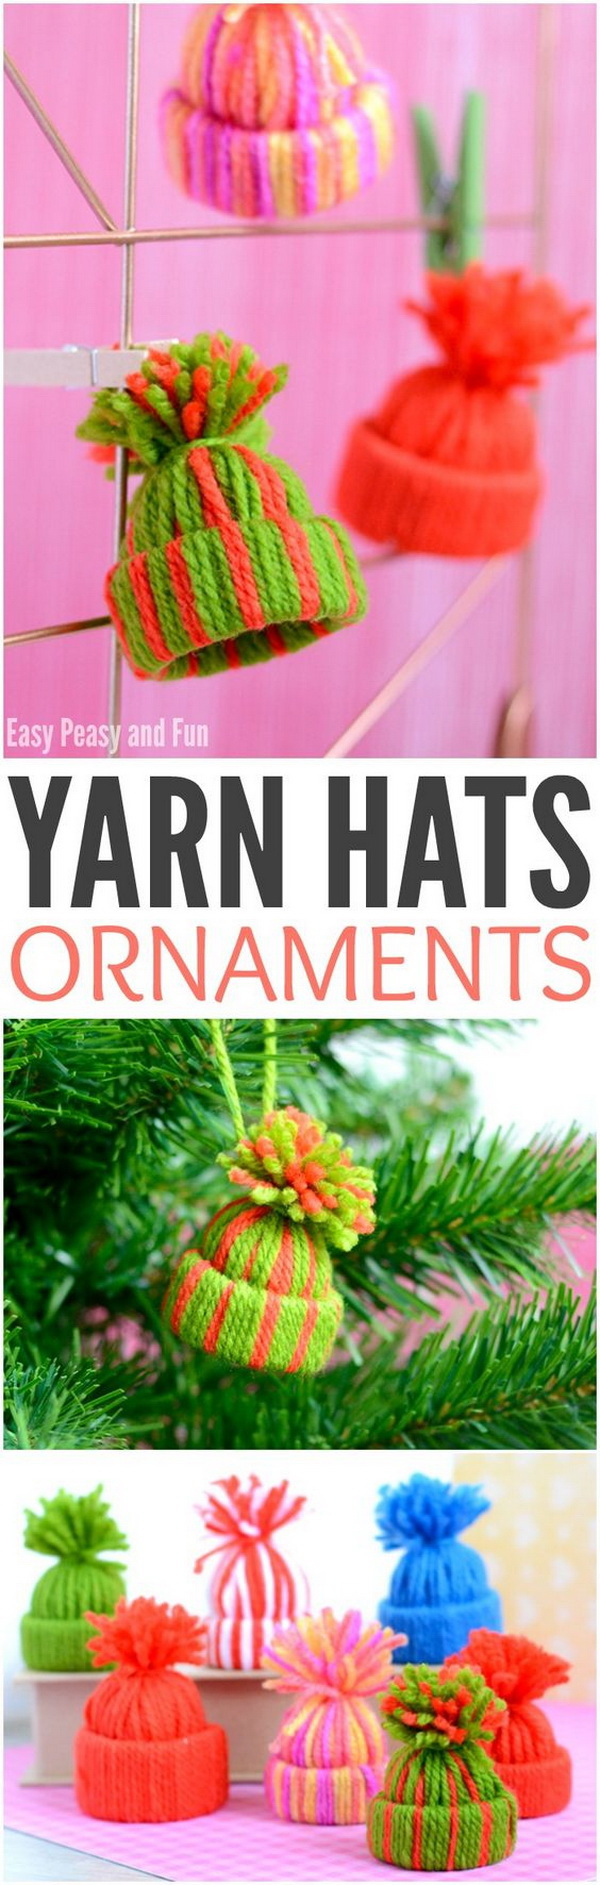 Mini Yarn Hats Ornaments. These little winter hats make easy and cute Christmas ornaments!